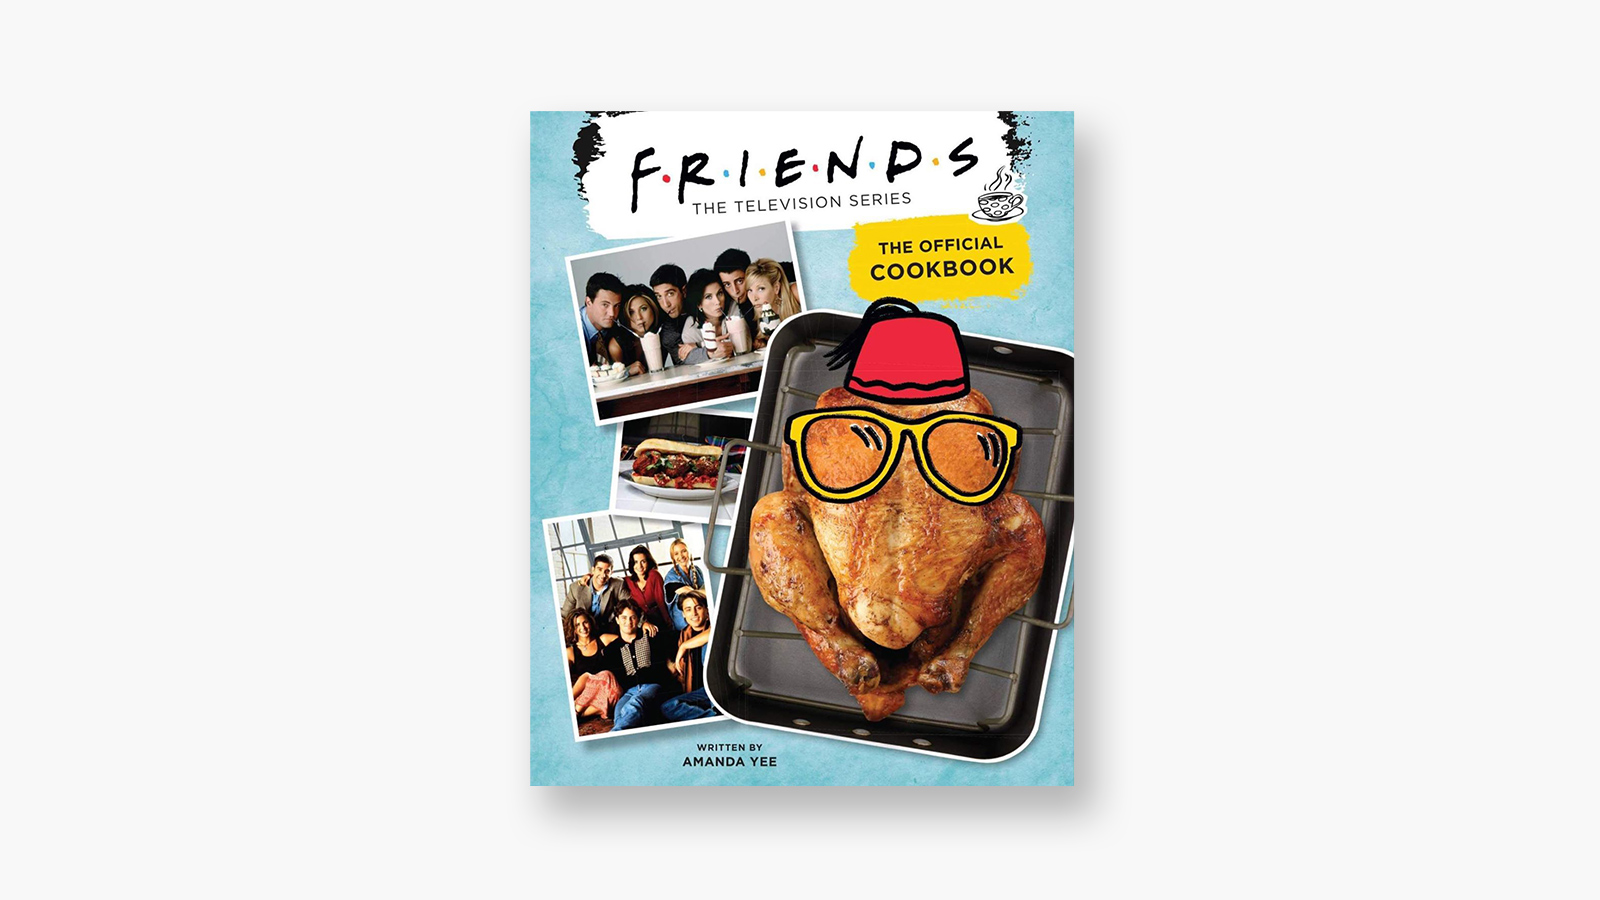 'Friends: The Official Cookbook' by Amanda Yee